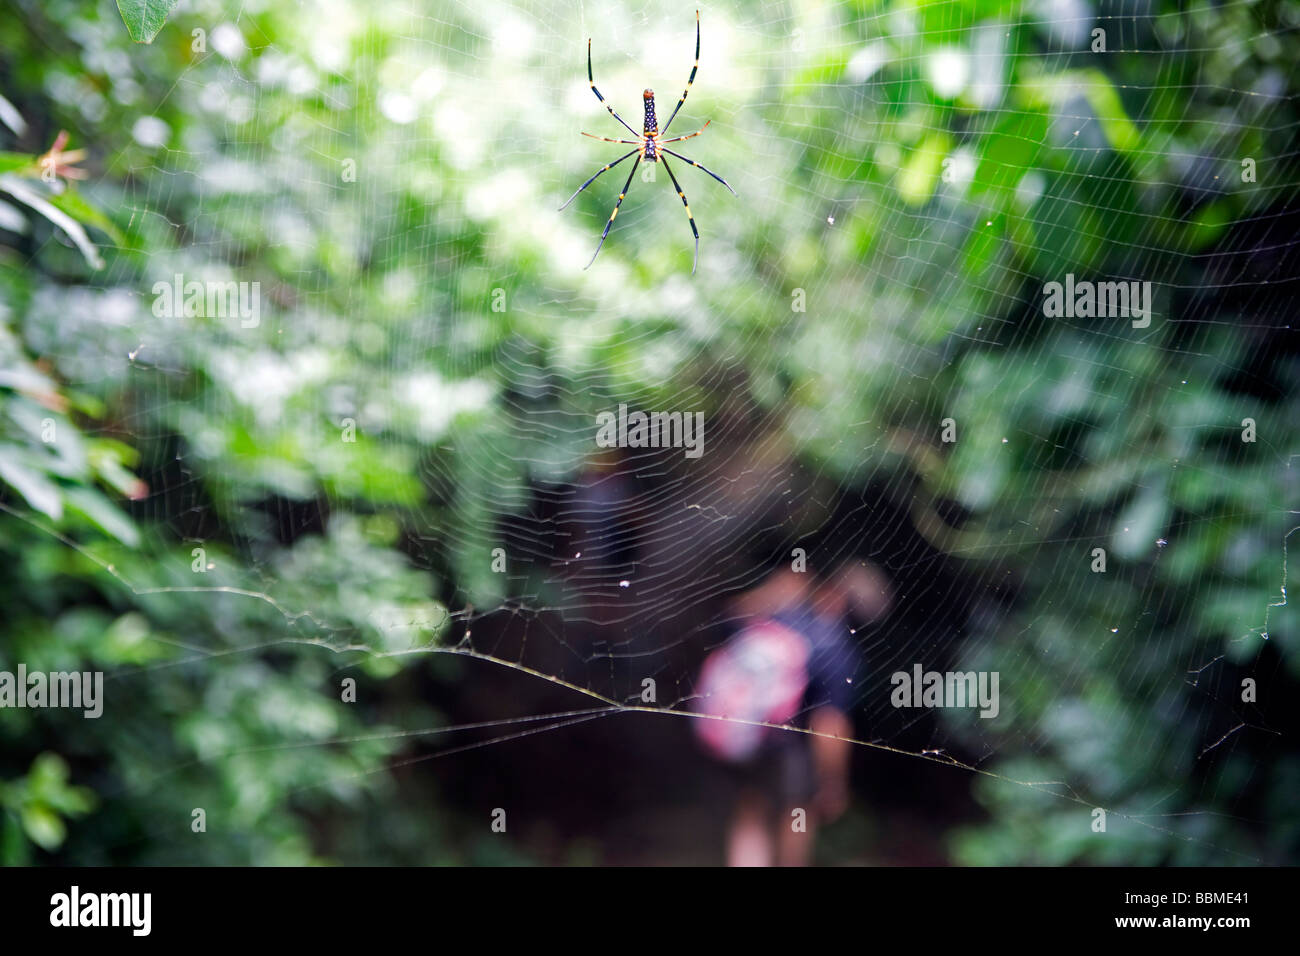 China, Hong Kong, Lantua Island. Walking the Lantua Trail is surprisingly rich in natural variety of Spiders - Stock Image